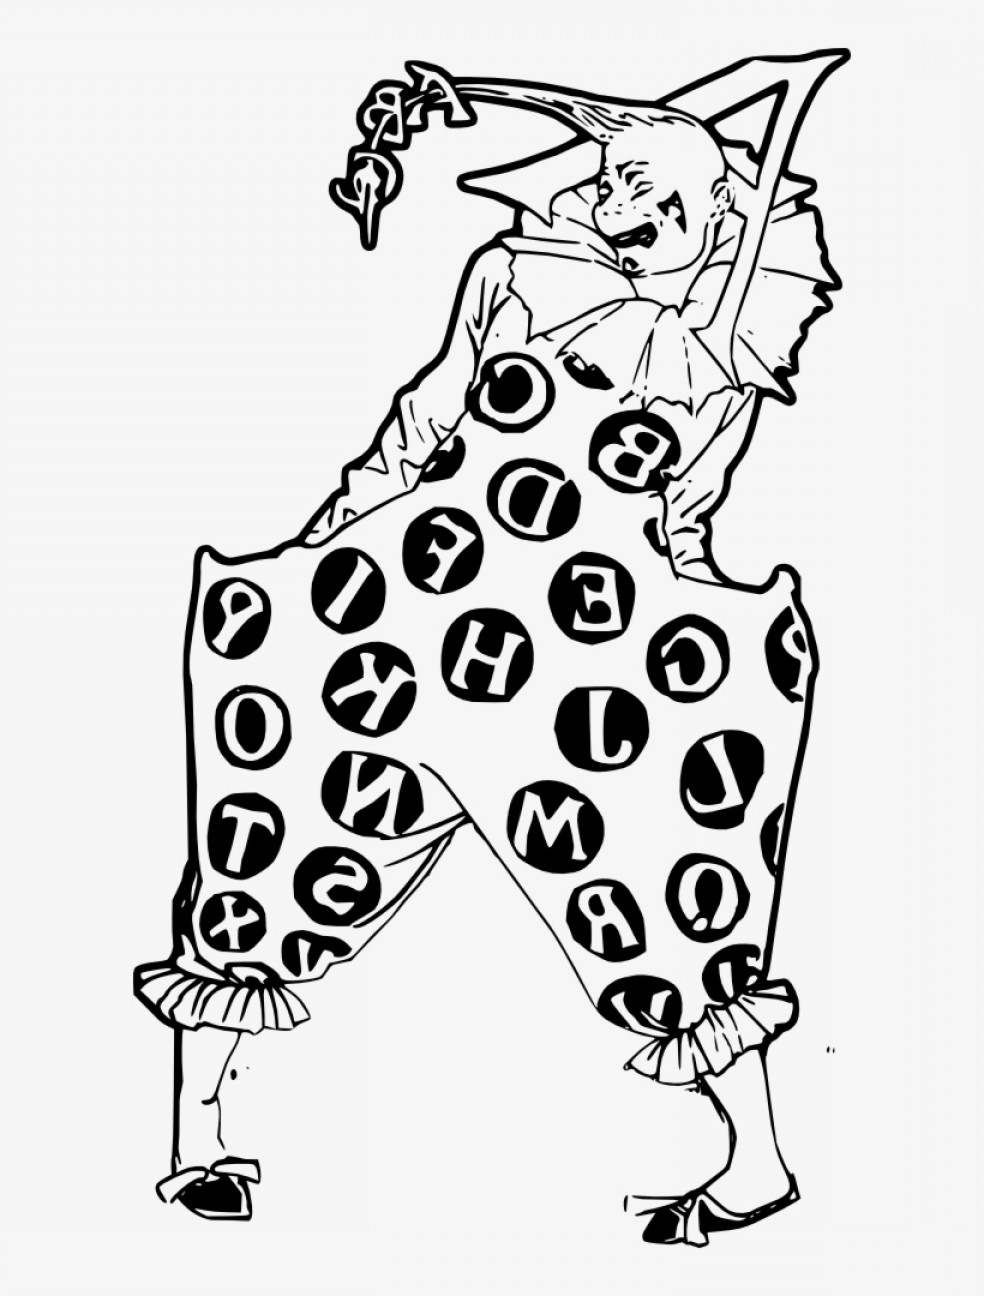 Pennywise Clown Vector: Uqquwuwqfree Vector Creepy Alphabet Clown Clip Art Creepy